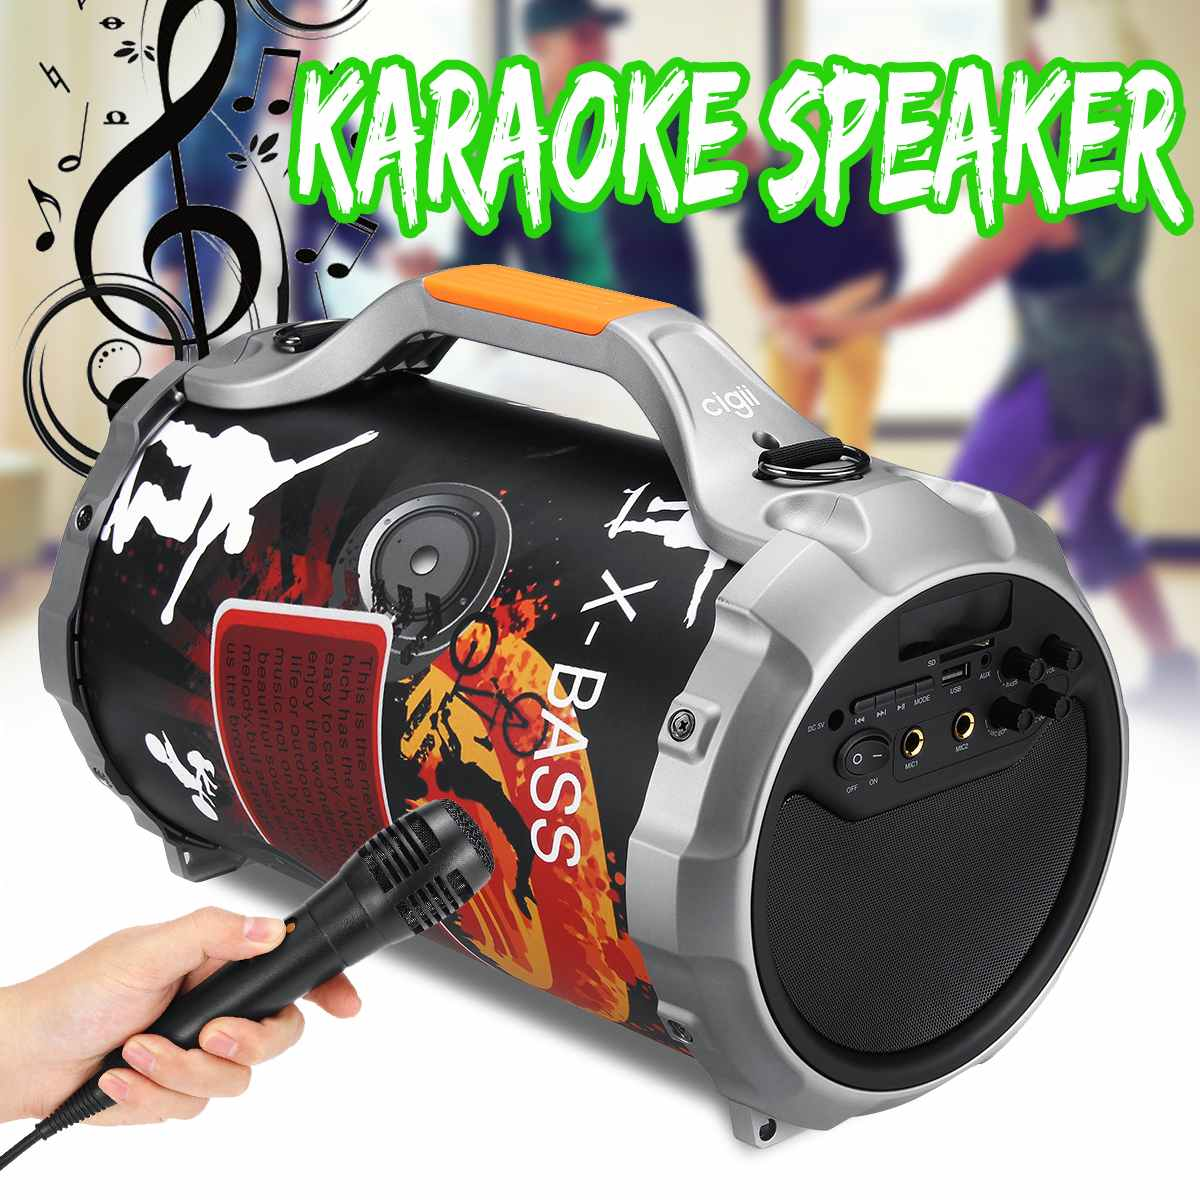 Large Power Wireless bluetooth Speaker Portable Stereo Bass Subwoofer Karaoke DJ Loud Music System +Microphone Outdoor FM AUX SDLarge Power Wireless bluetooth Speaker Portable Stereo Bass Subwoofer Karaoke DJ Loud Music System +Microphone Outdoor FM AUX SD